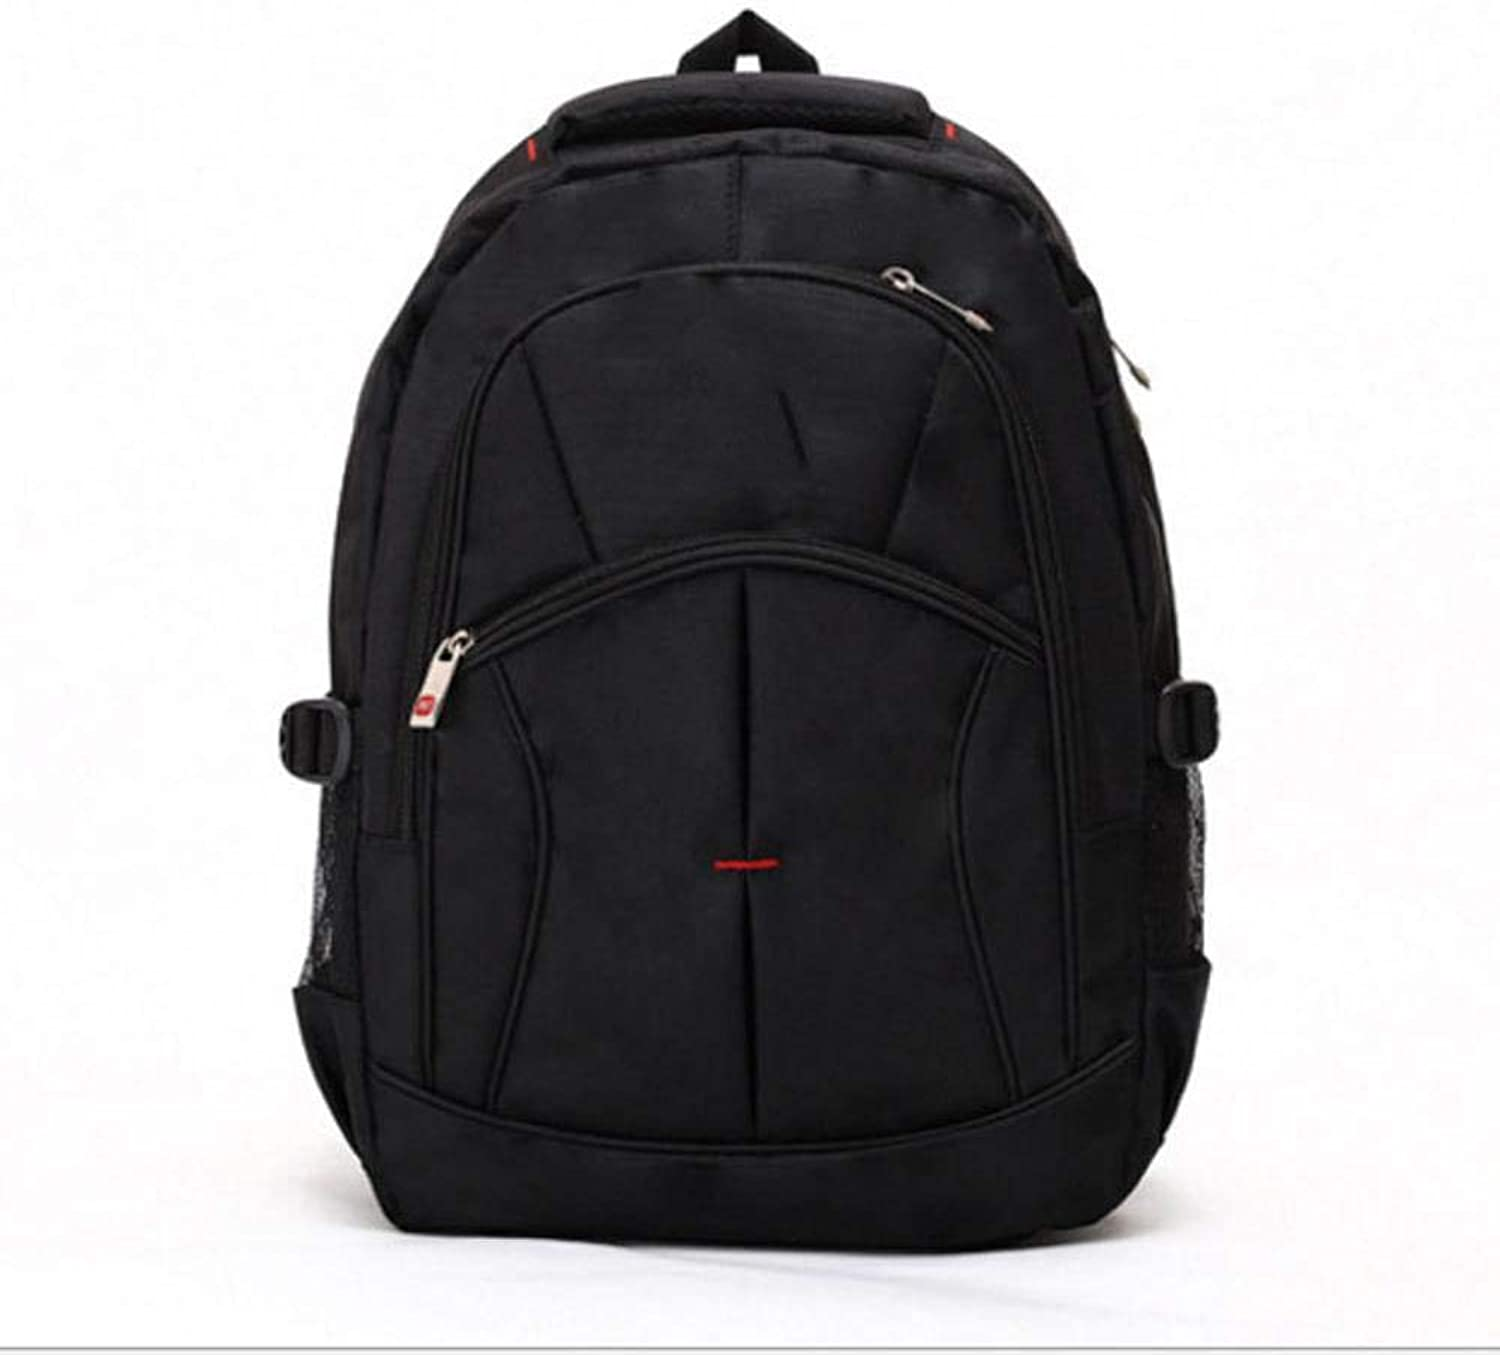 8ba292dc3eb NuoEn Sports Backpack Fashion Backpack Unisex Casual Backpack Travel Pouch  Bag